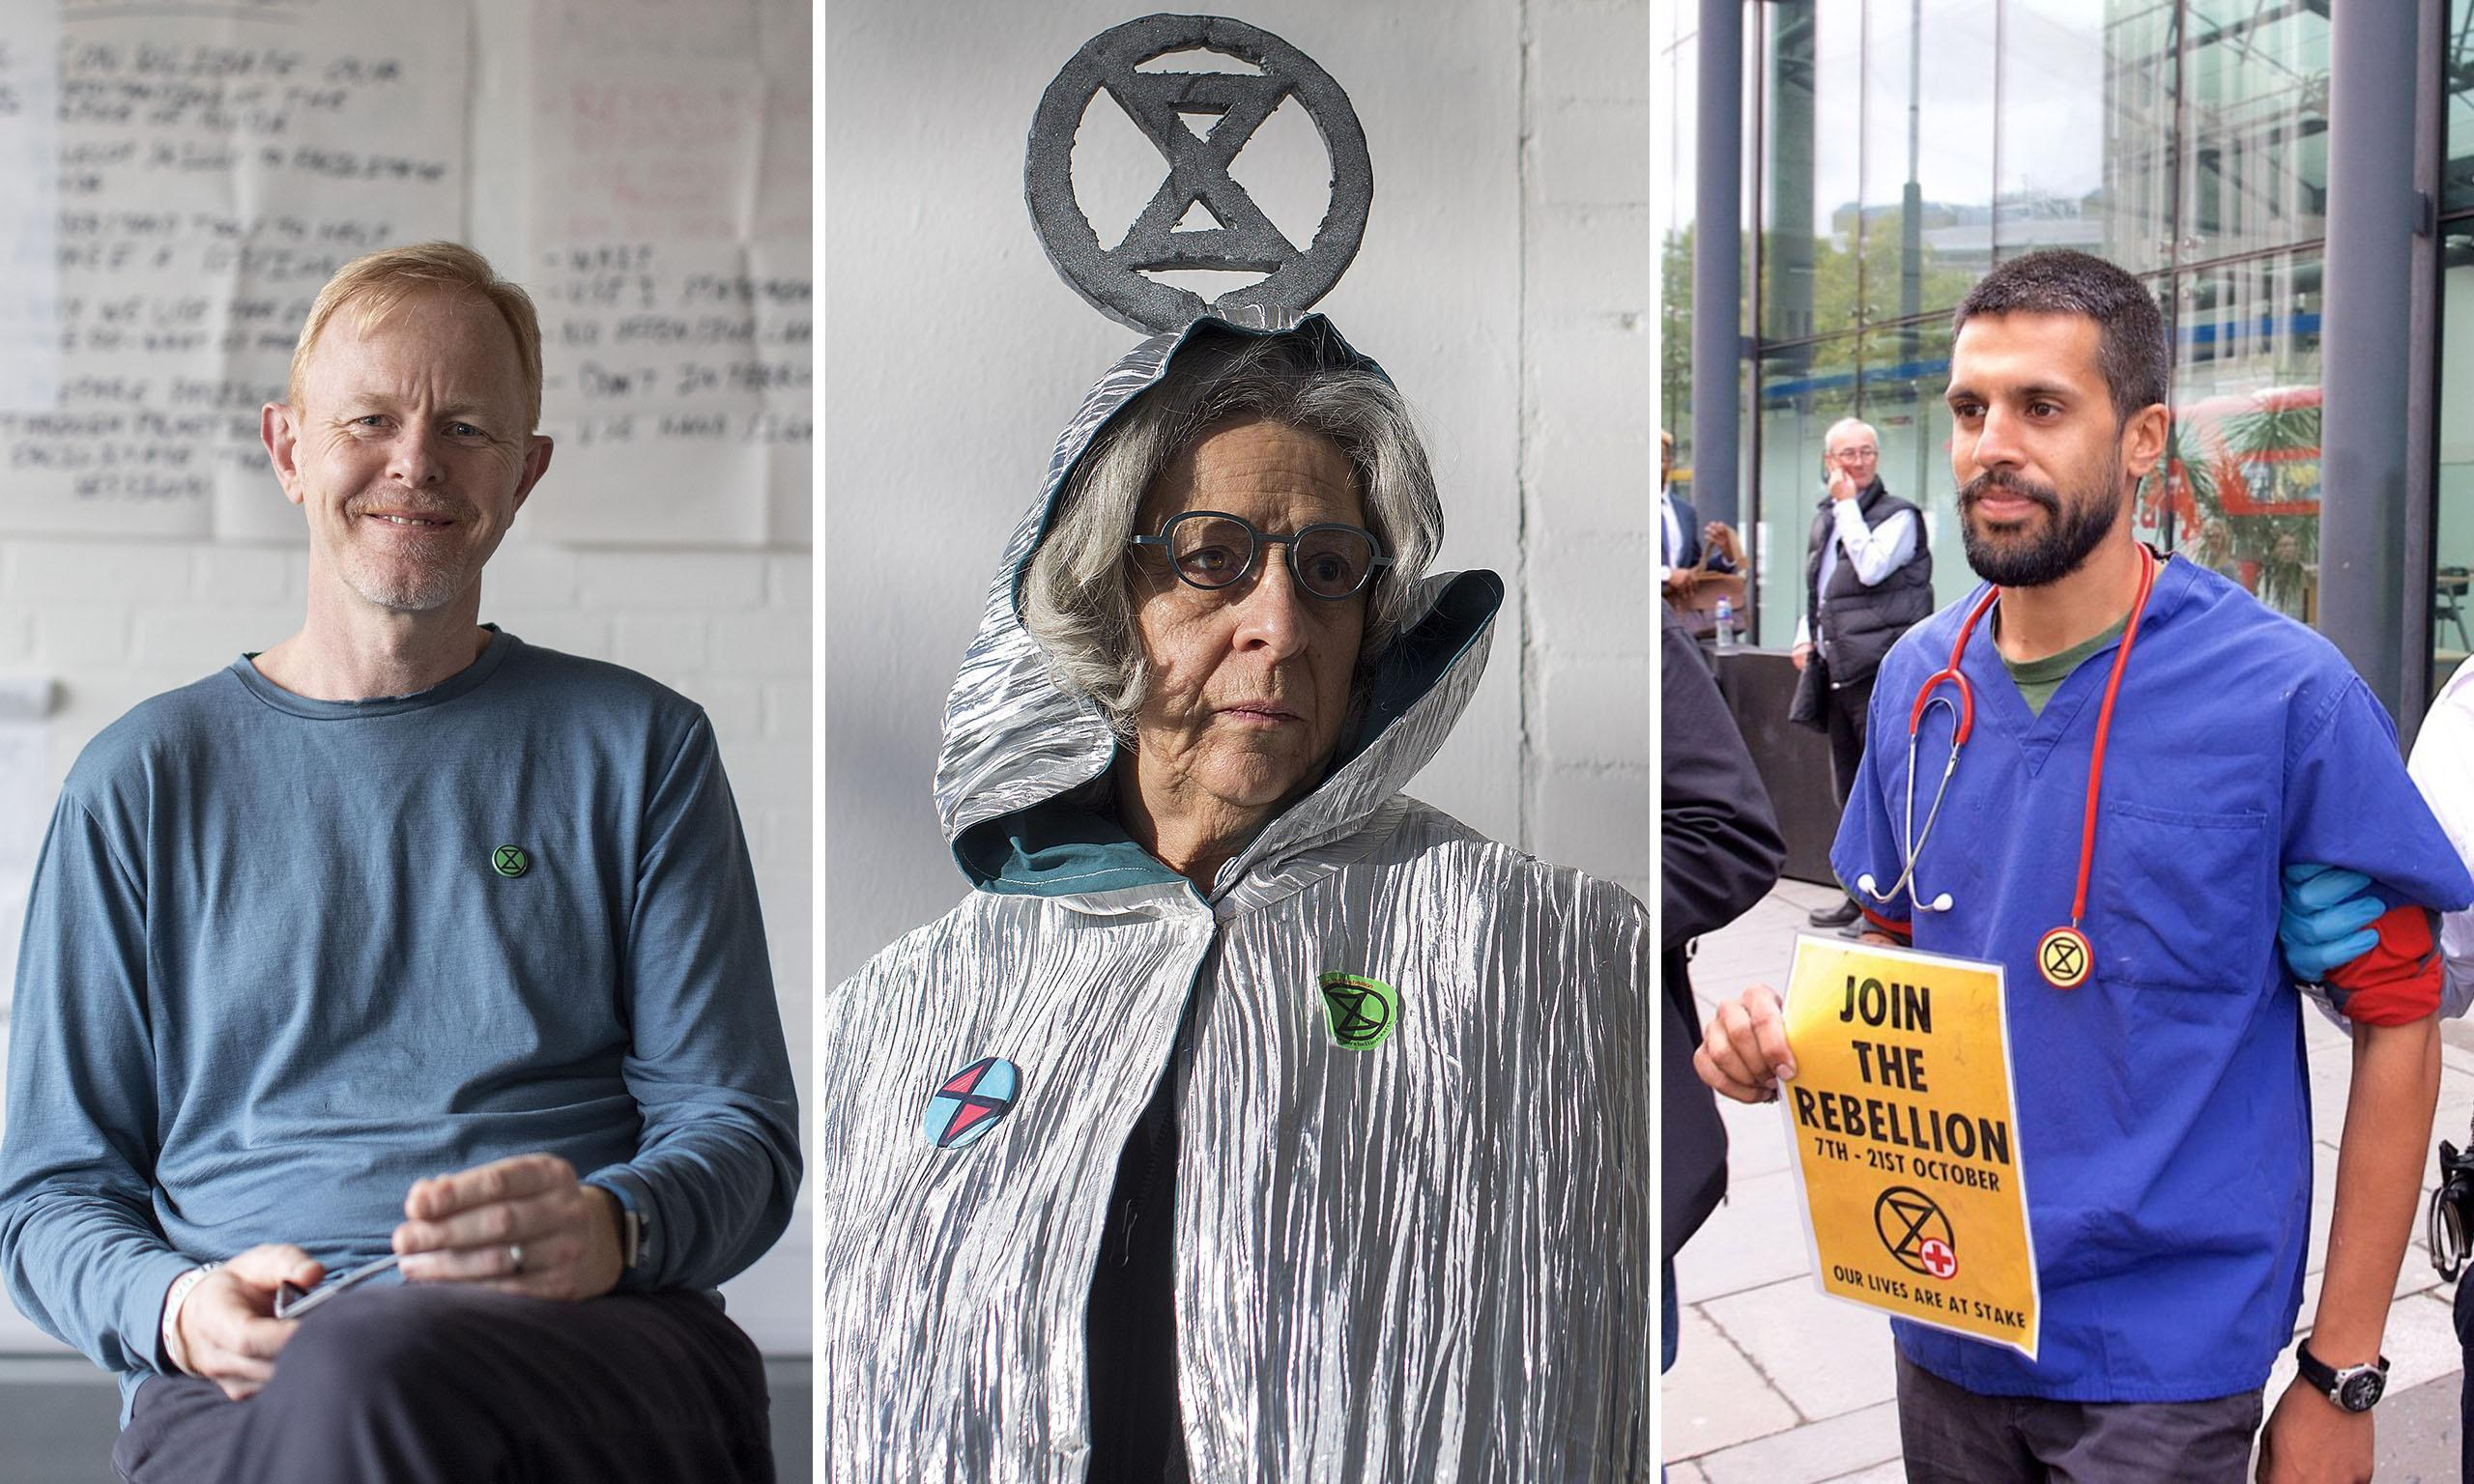 The doctor and banker who quit to join Extinction Rebellion: 'You have to do what is right'